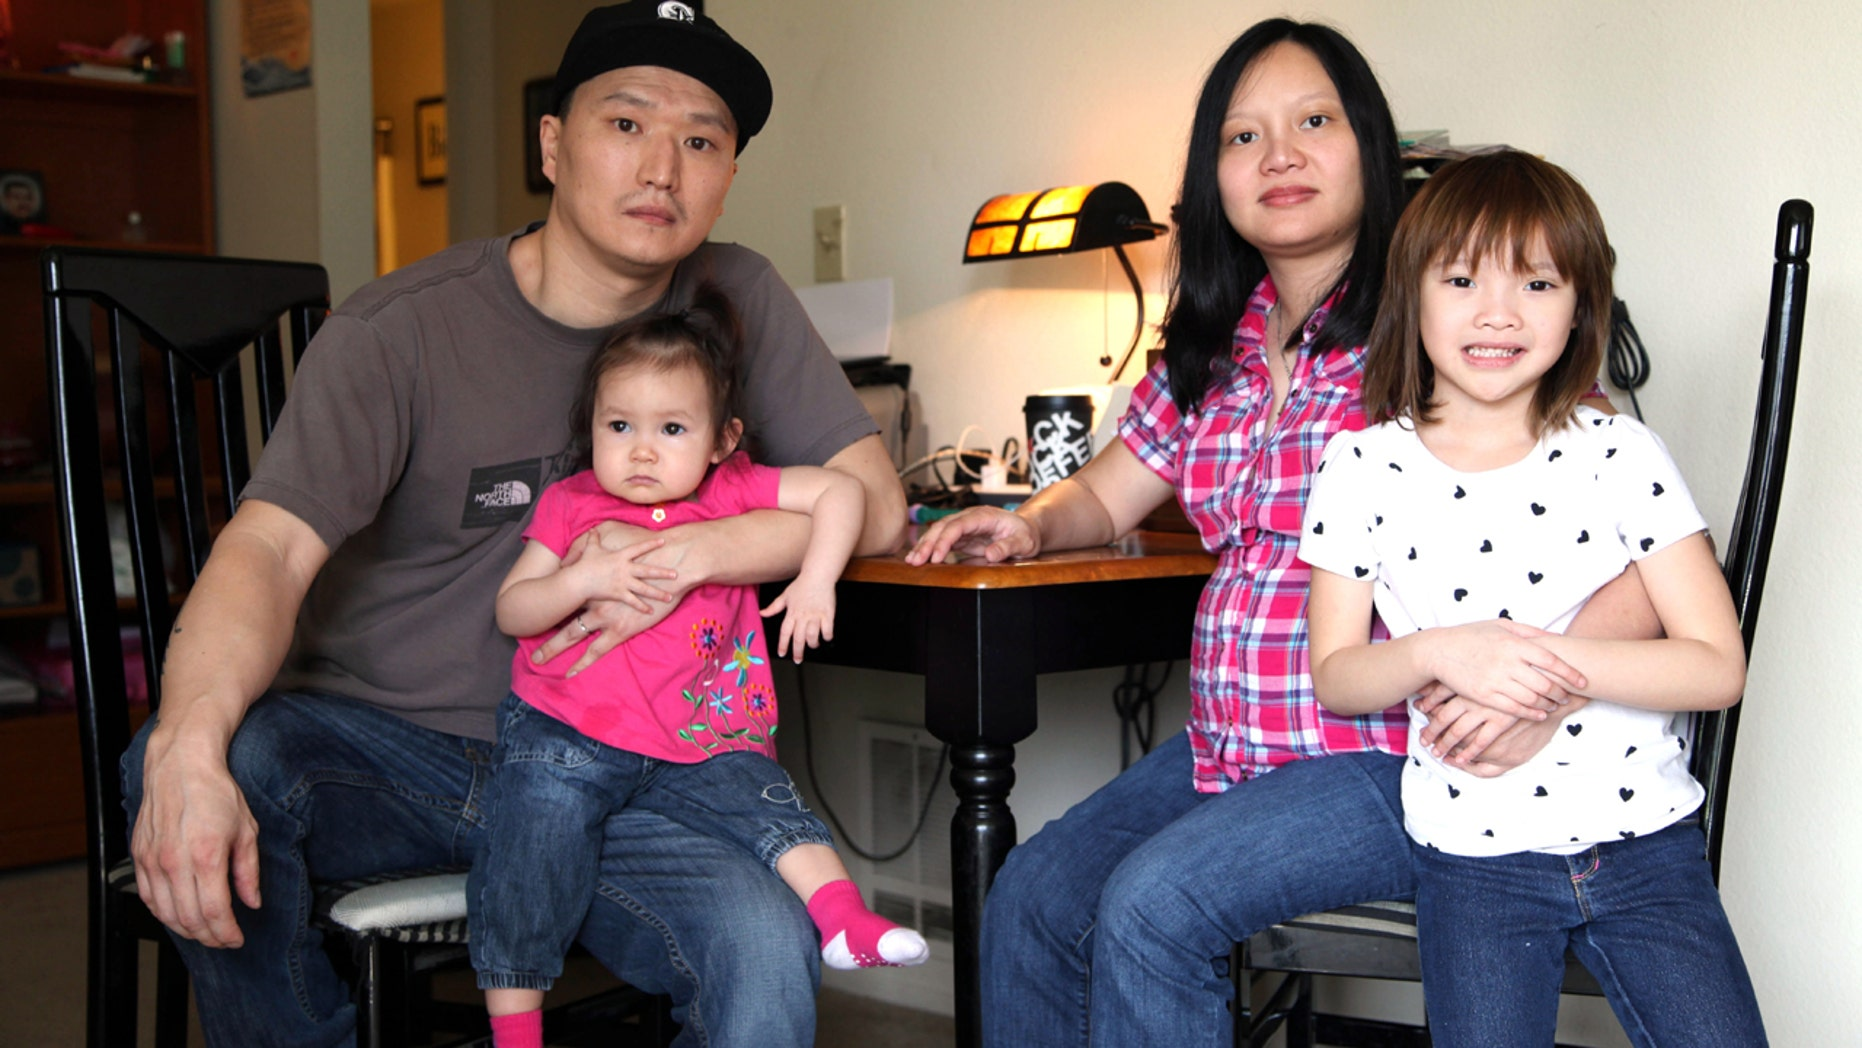 March 19, 2015: Korean adoptee Adam Crapser, left, poses with daughters, Christal, 1, Christina, 5, and his wife, Anh Nguyen, in the family's living room in Vancouver, Wash.